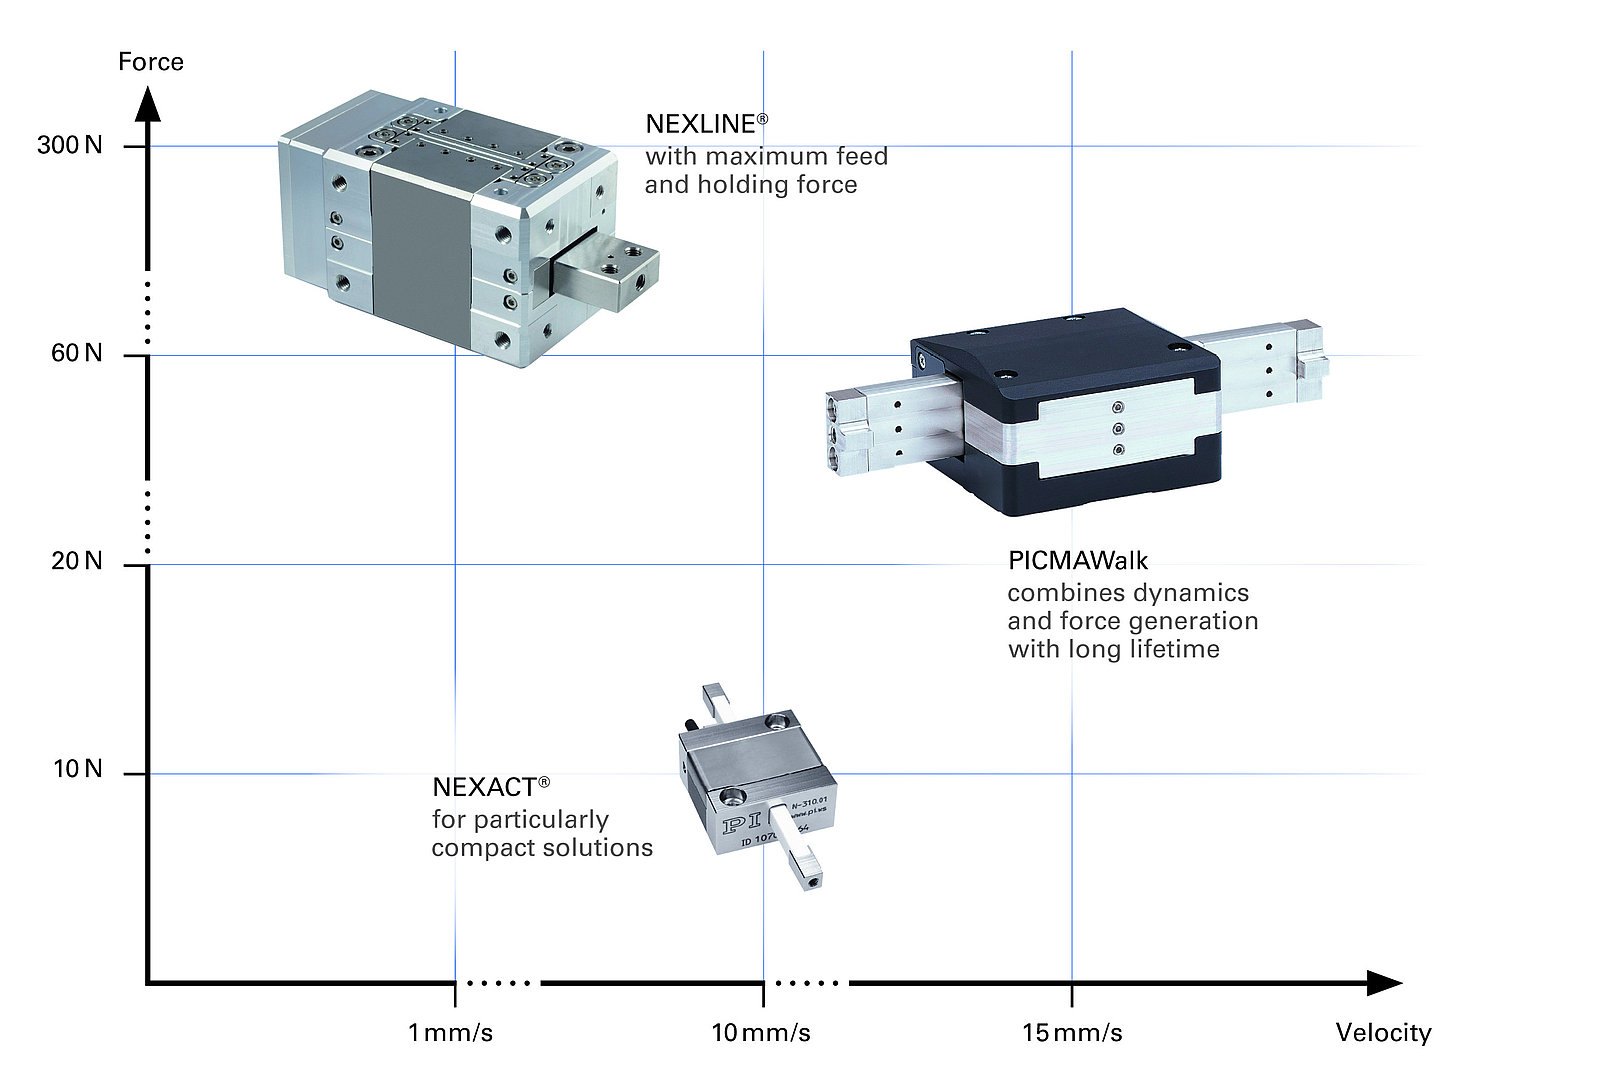 Piezowalk Walking Drives Smallest Welding Machine Diagram Cover A Wide Range Of Forces And Velocities This Makes It Possible To Serve Broad Spectrum Applications